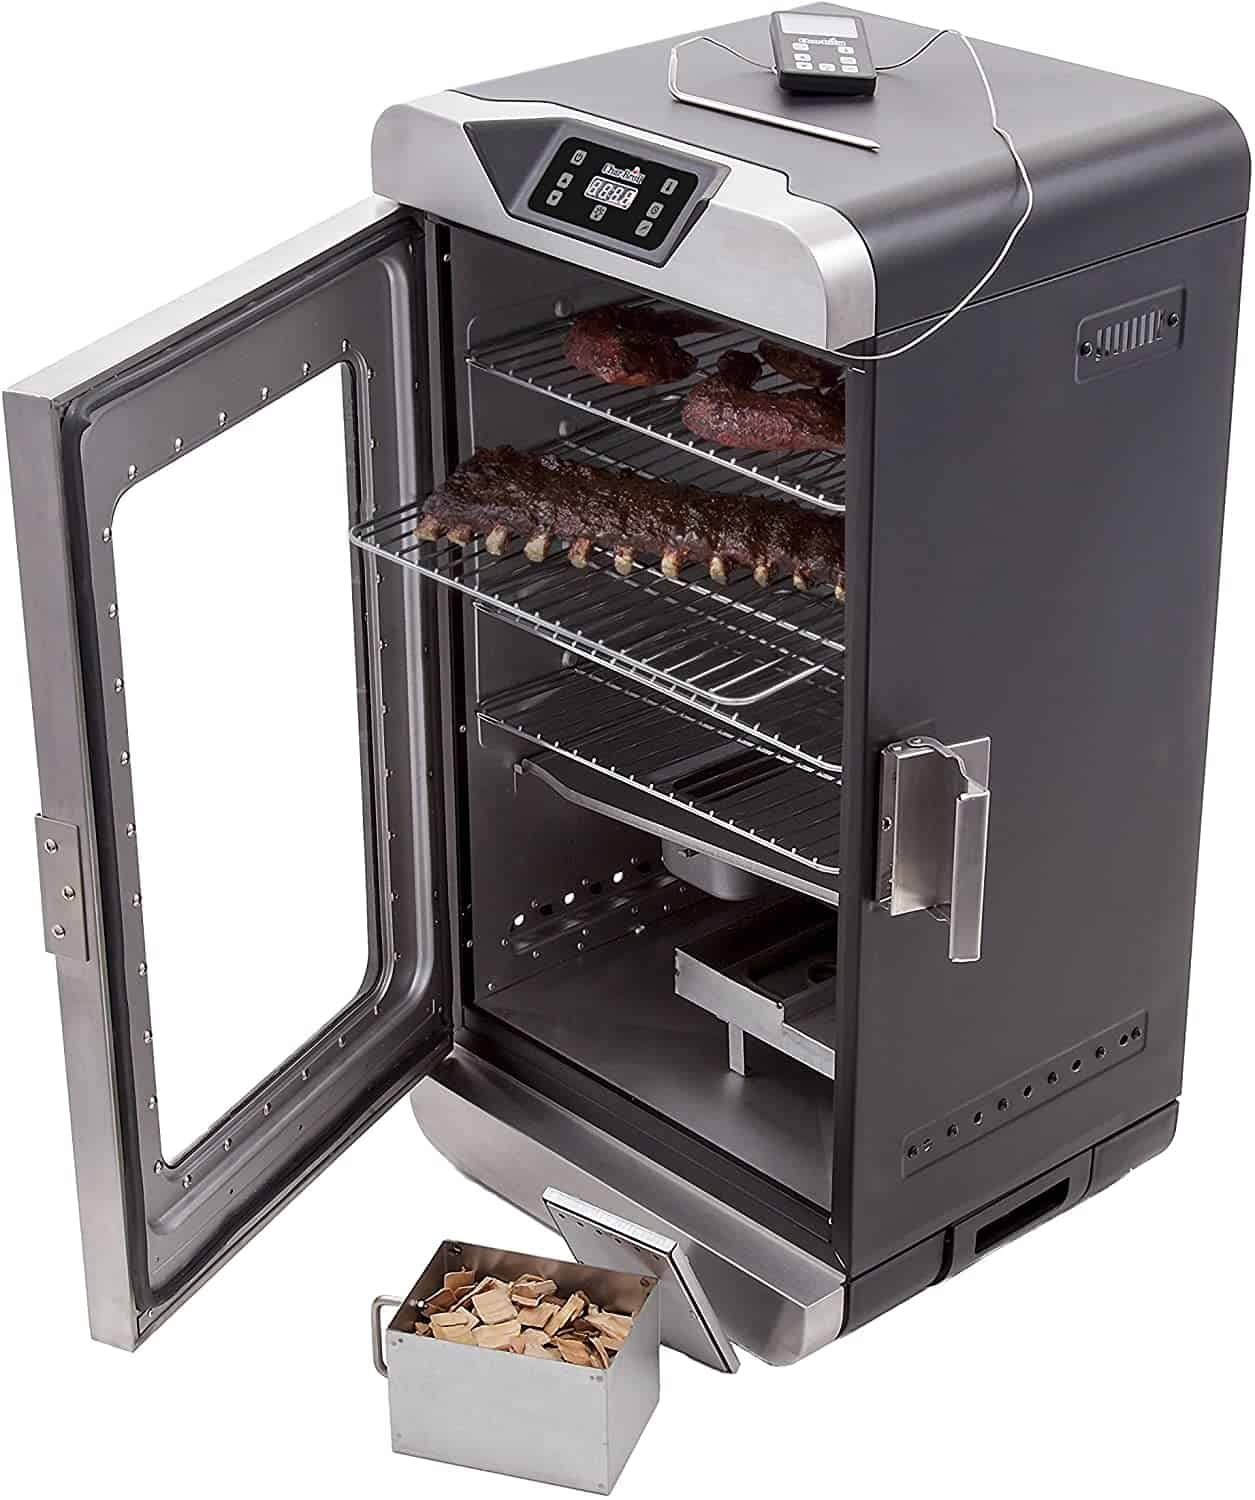 Best electric smoker for everyday use Char-Broil 17202004 Digital Deluxe